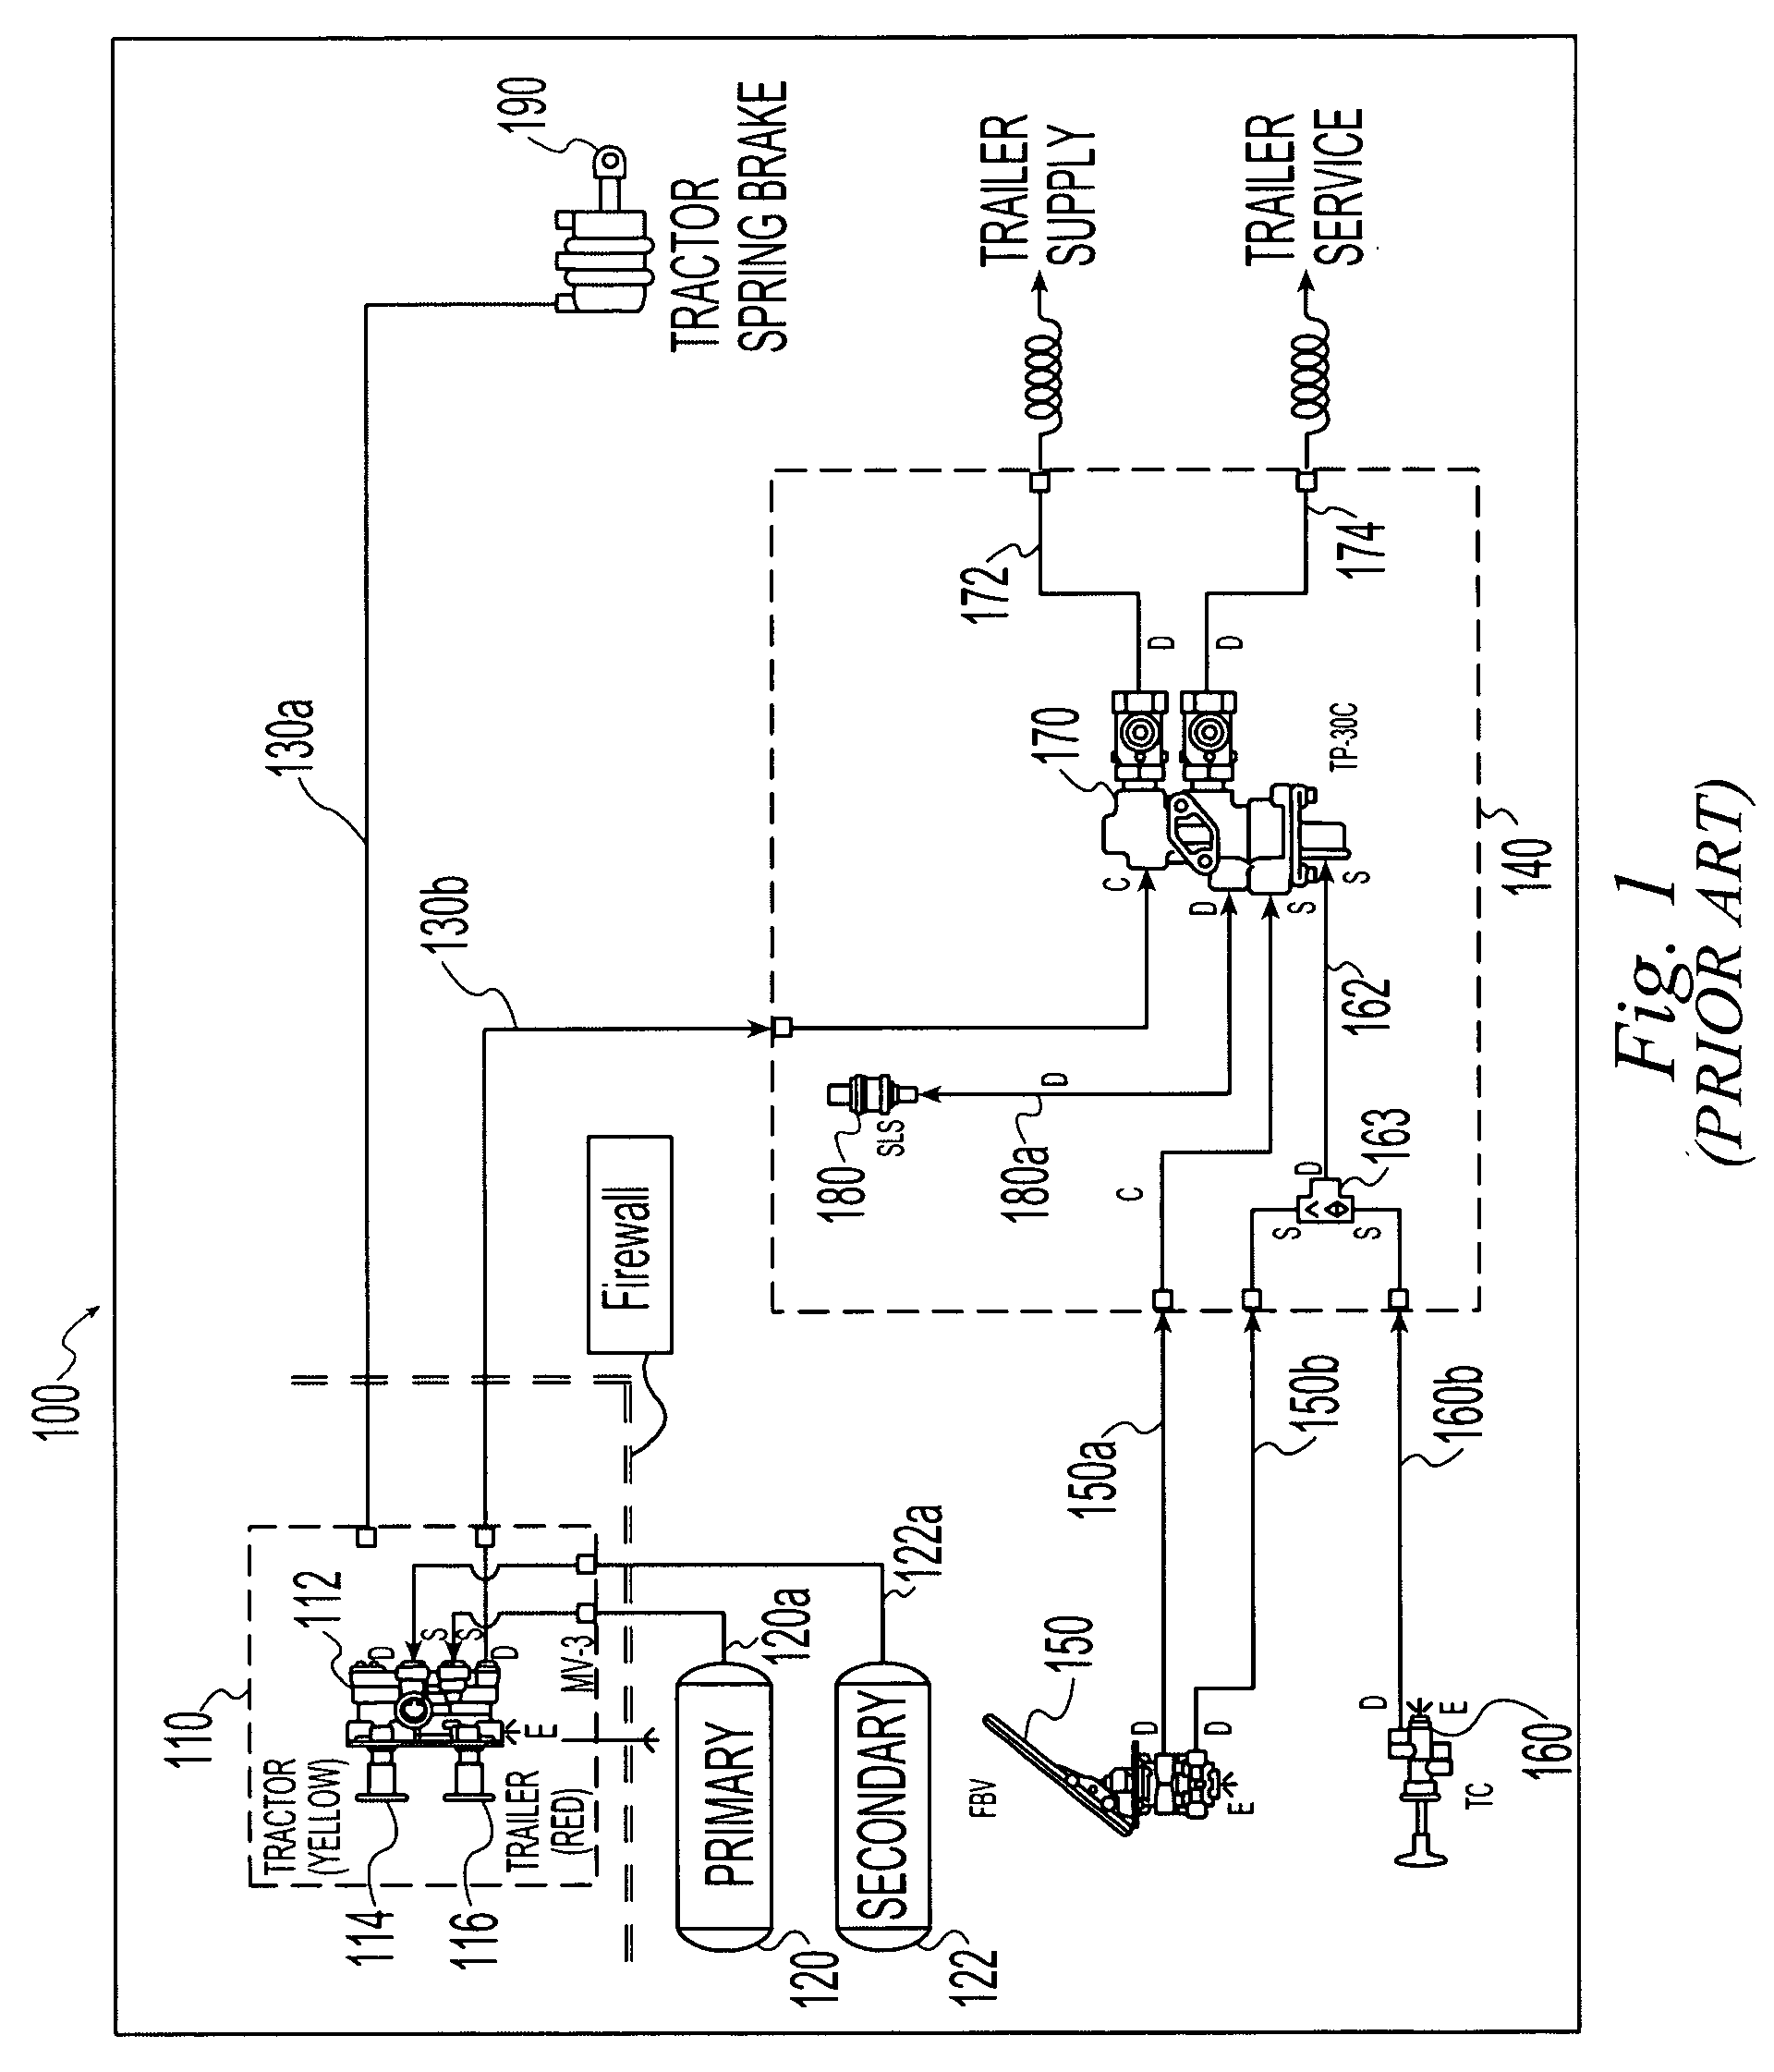 wiring diagram for wabco abs   28 wiring diagram images